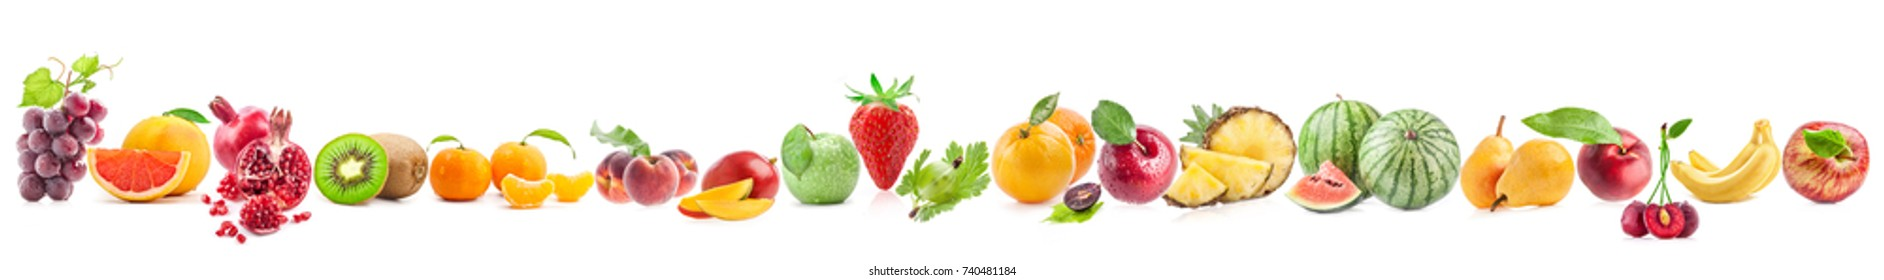 Fruit collections isolated on white background